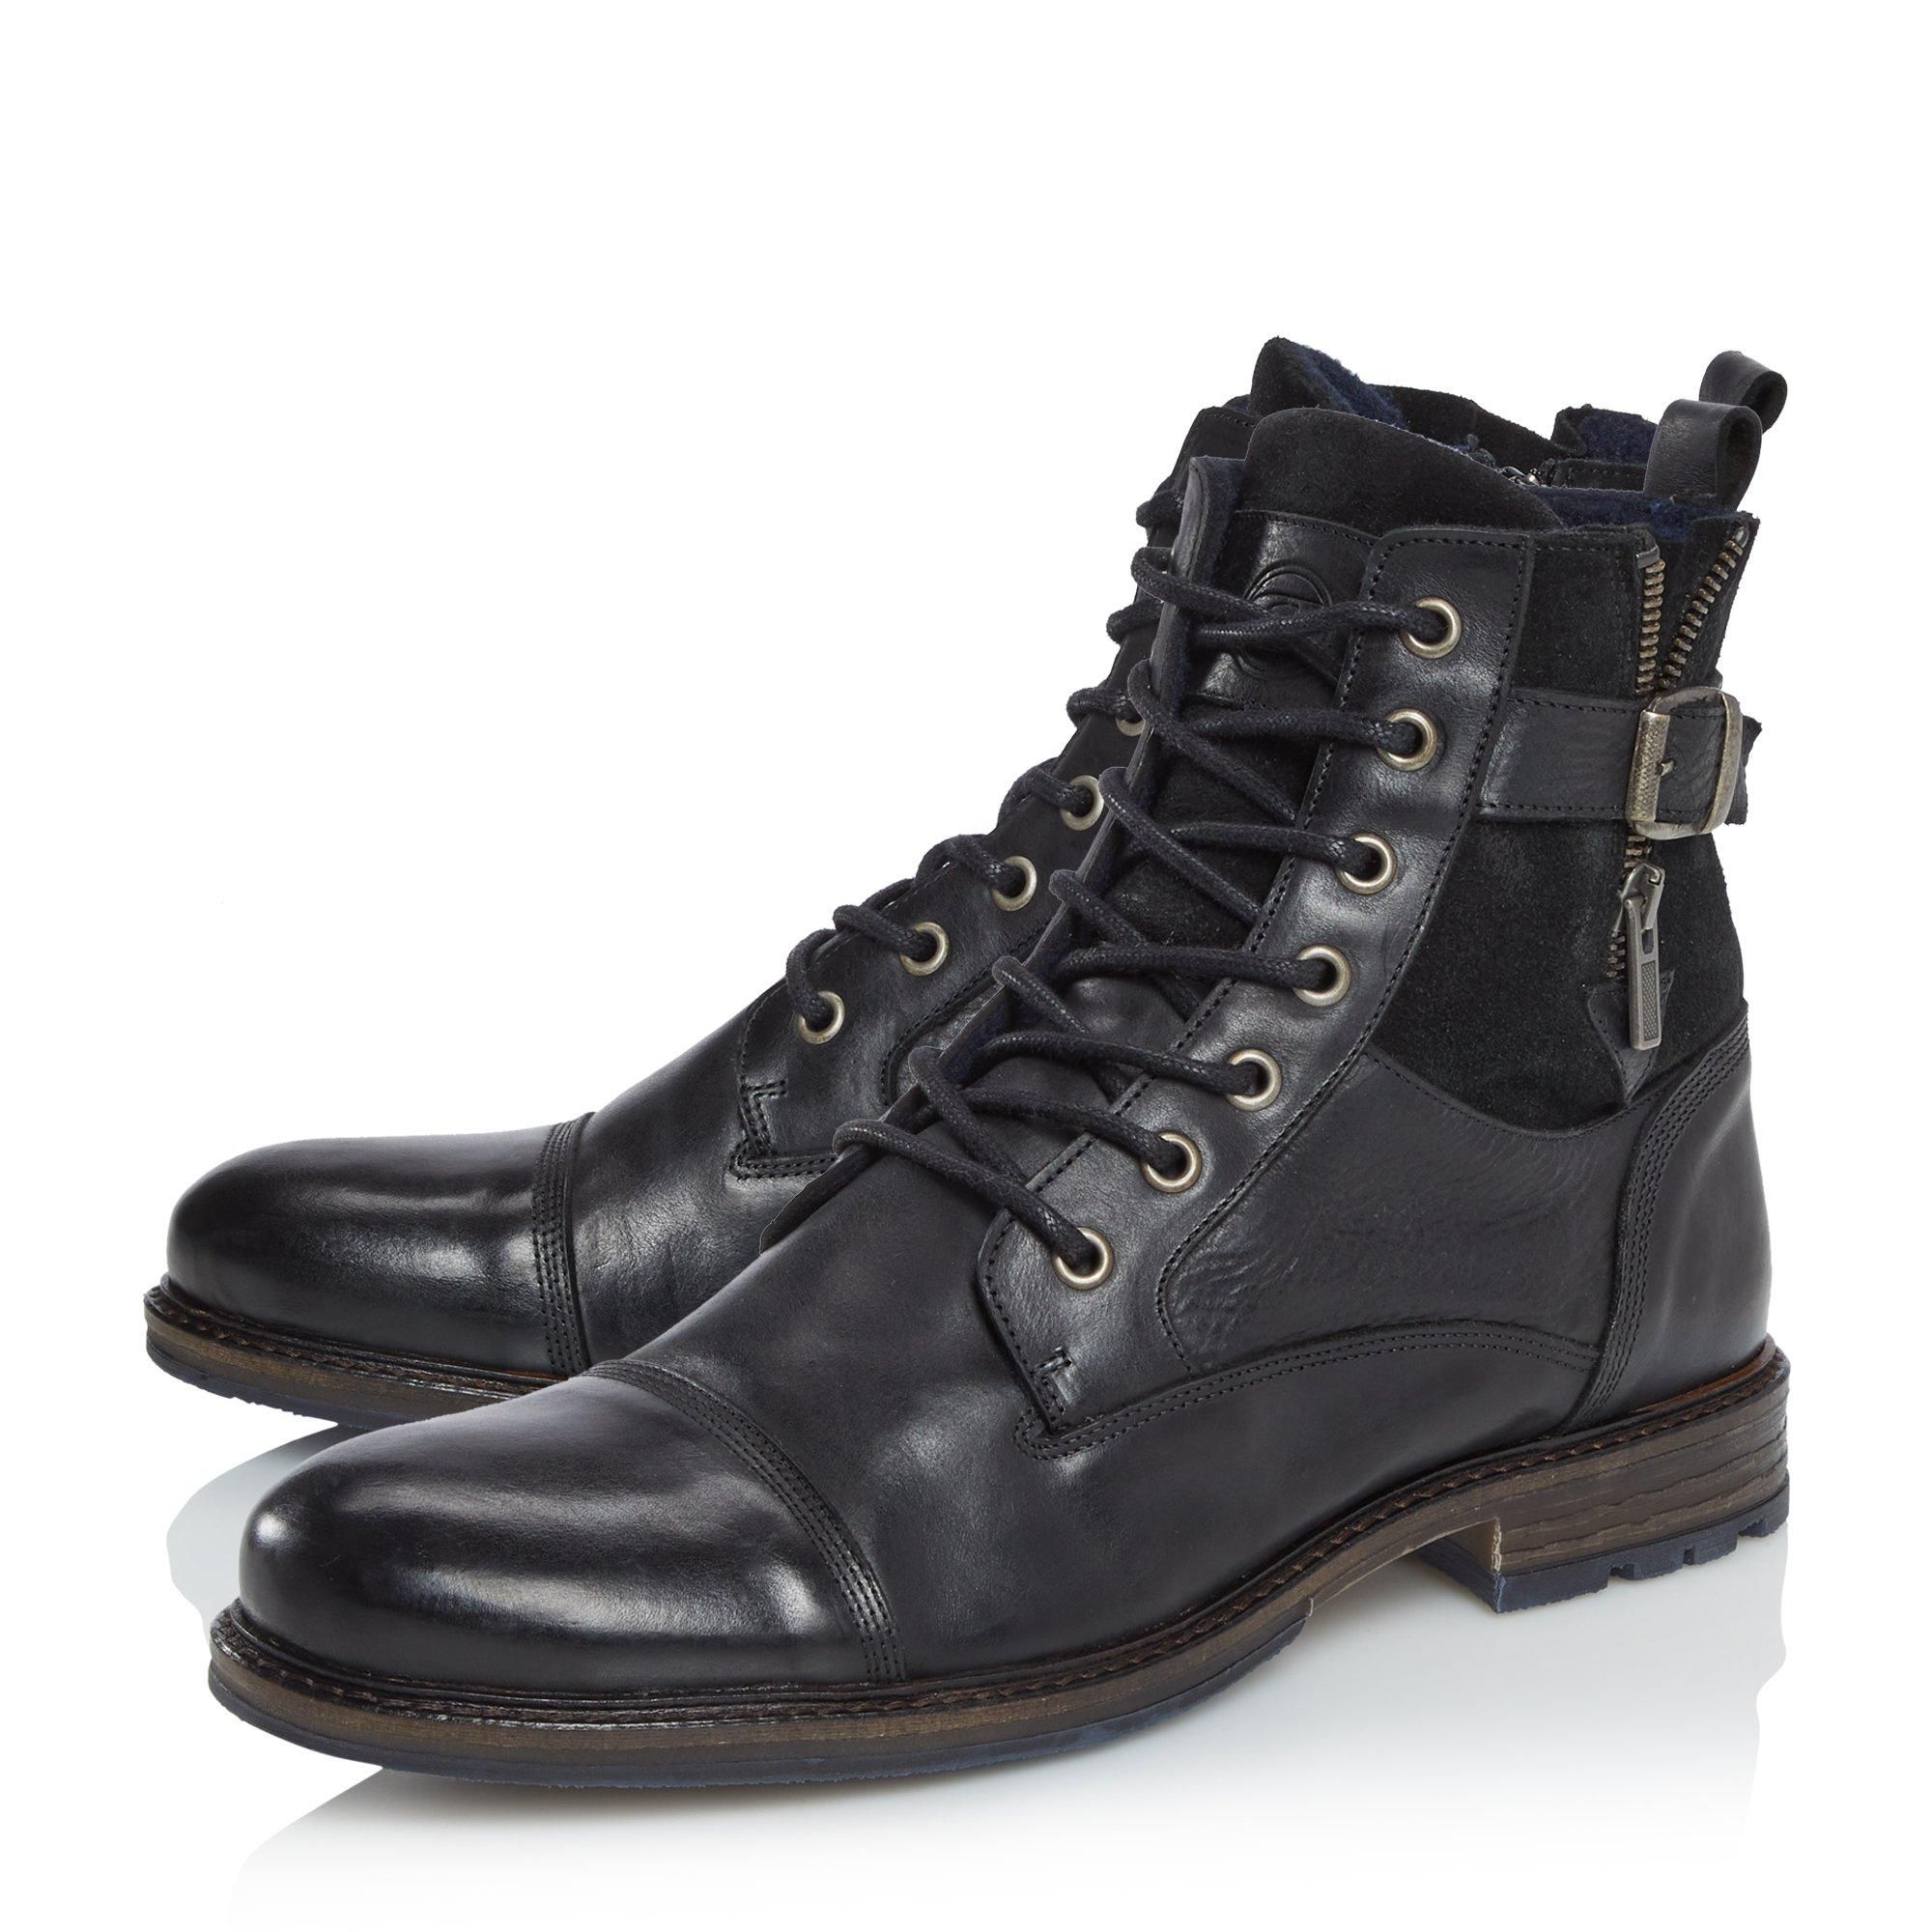 Dune Mens CALL Casual Buckle Detail Ankle Boots